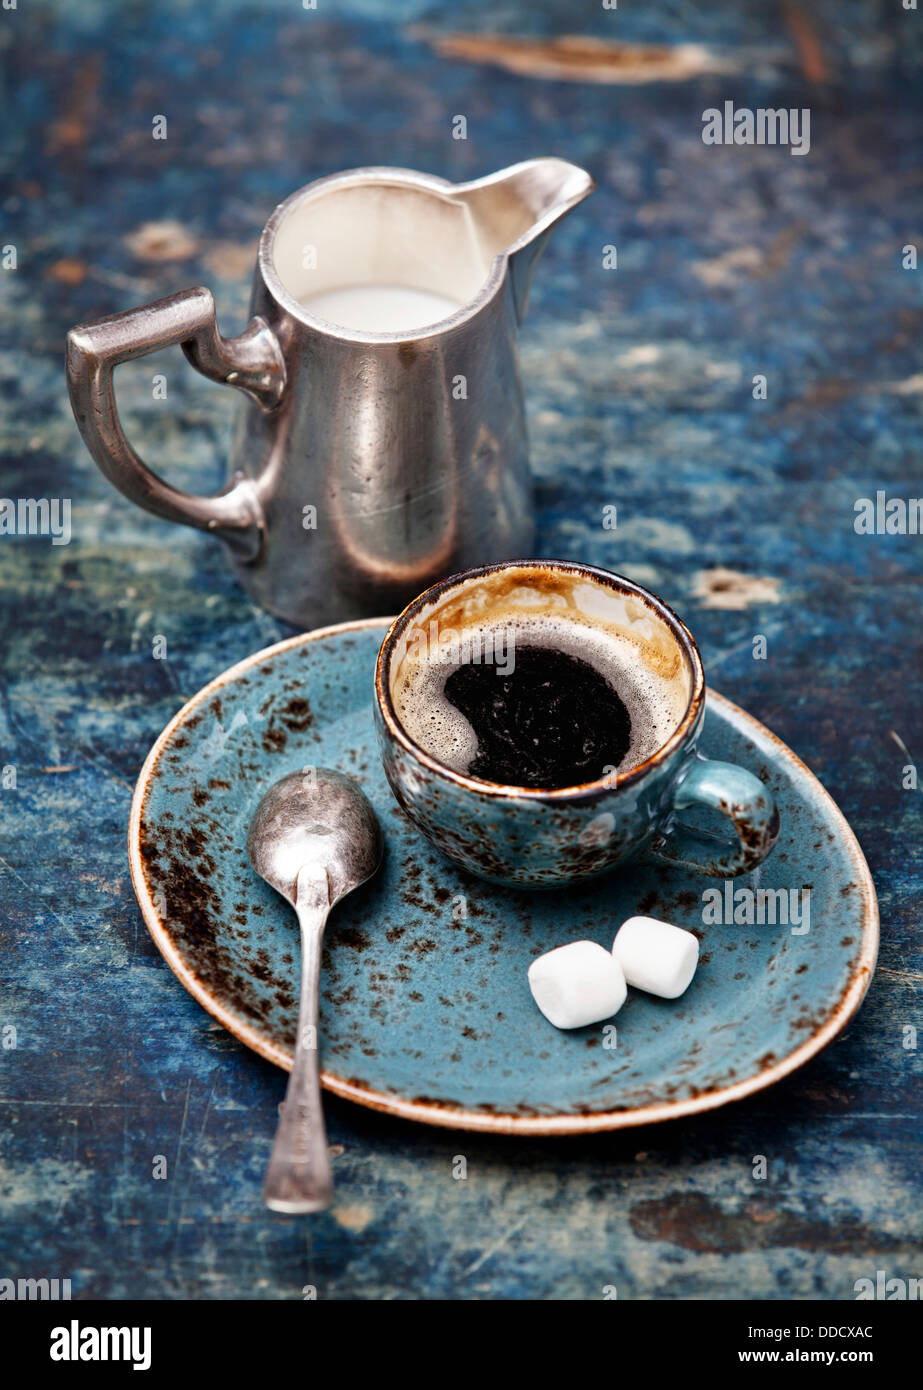 Coffee cup on blue background - Stock Image